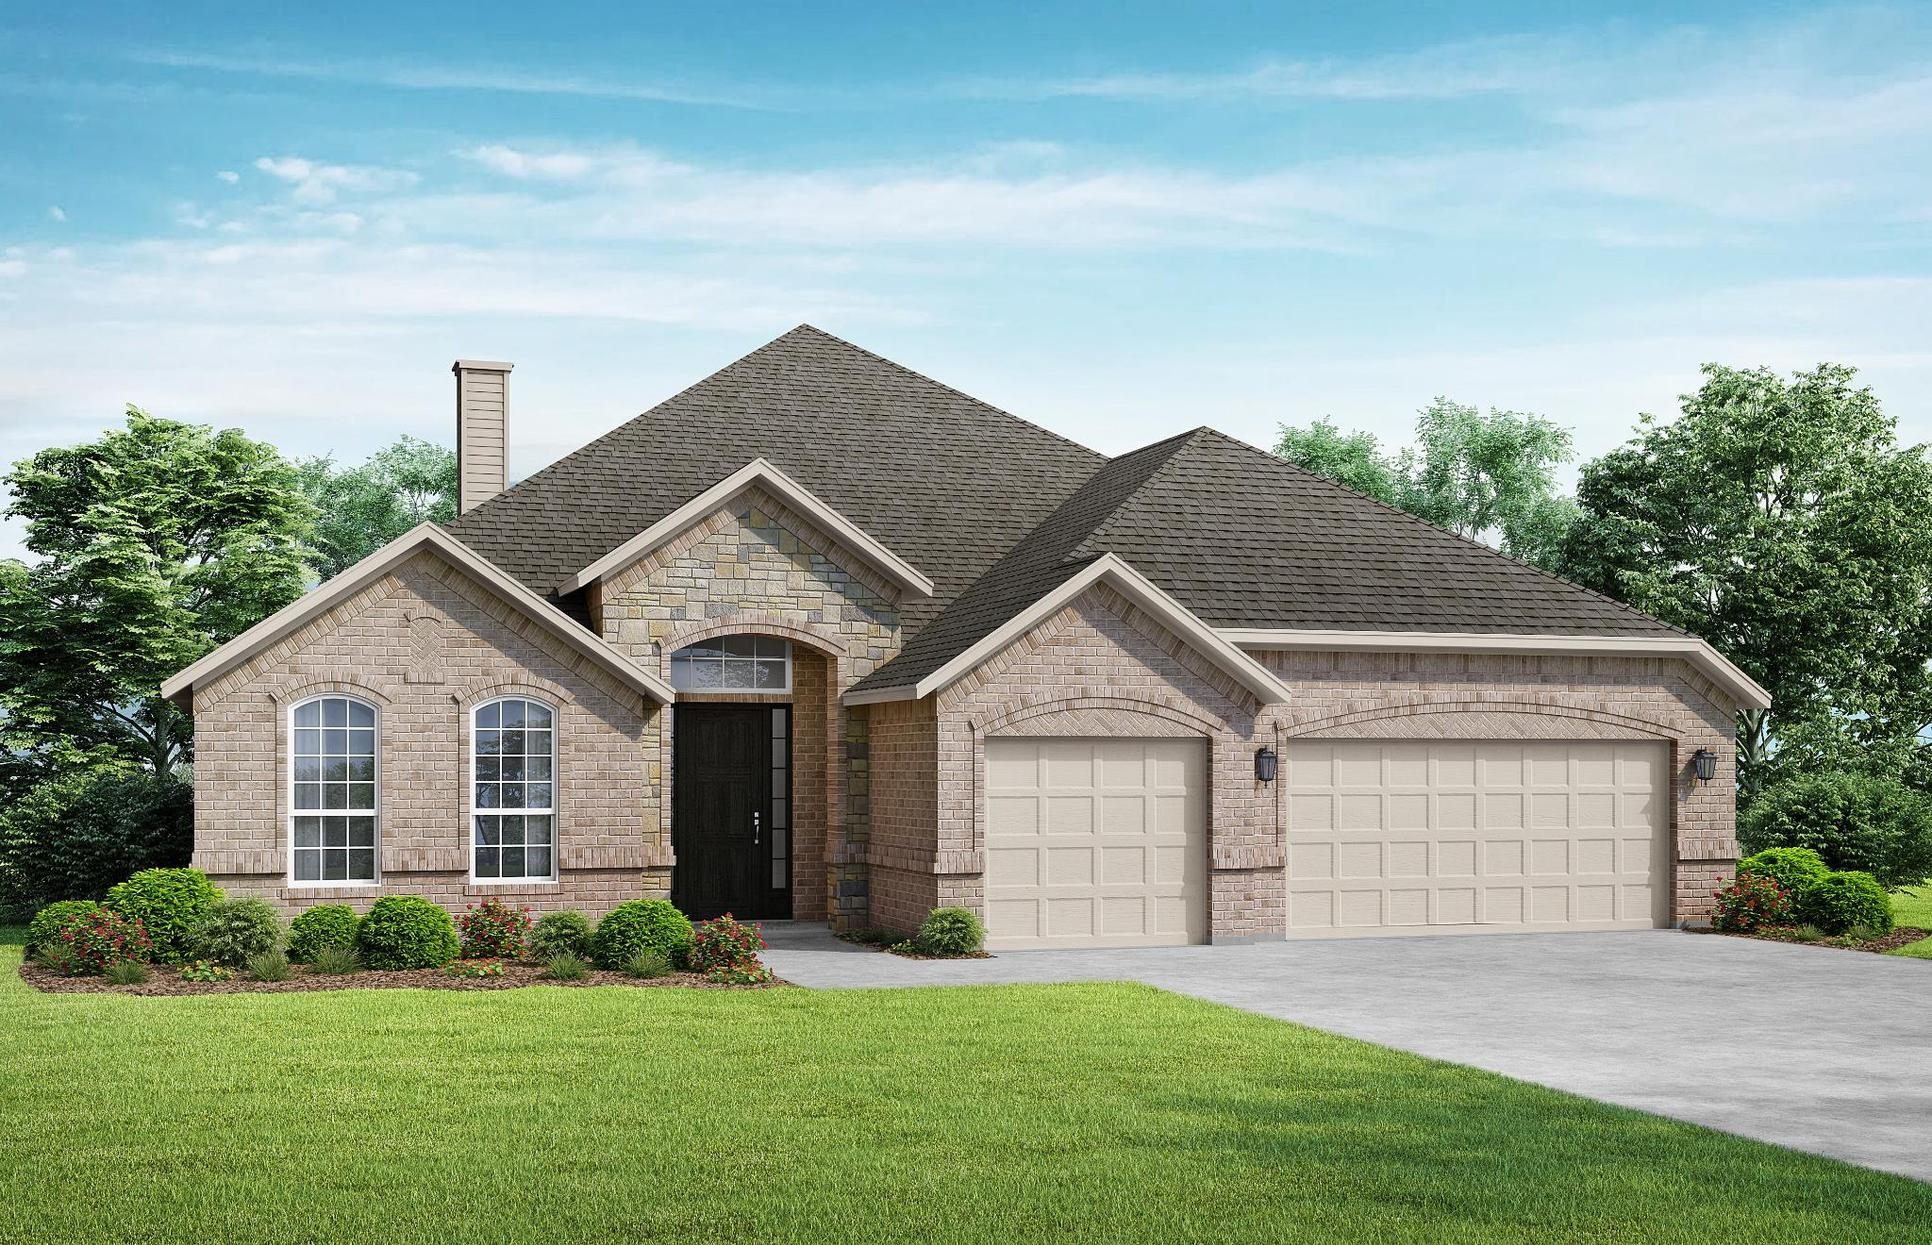 Garner Elevation A. Images are artist renderings and will differ from the actual home built.:Garner Elevation A